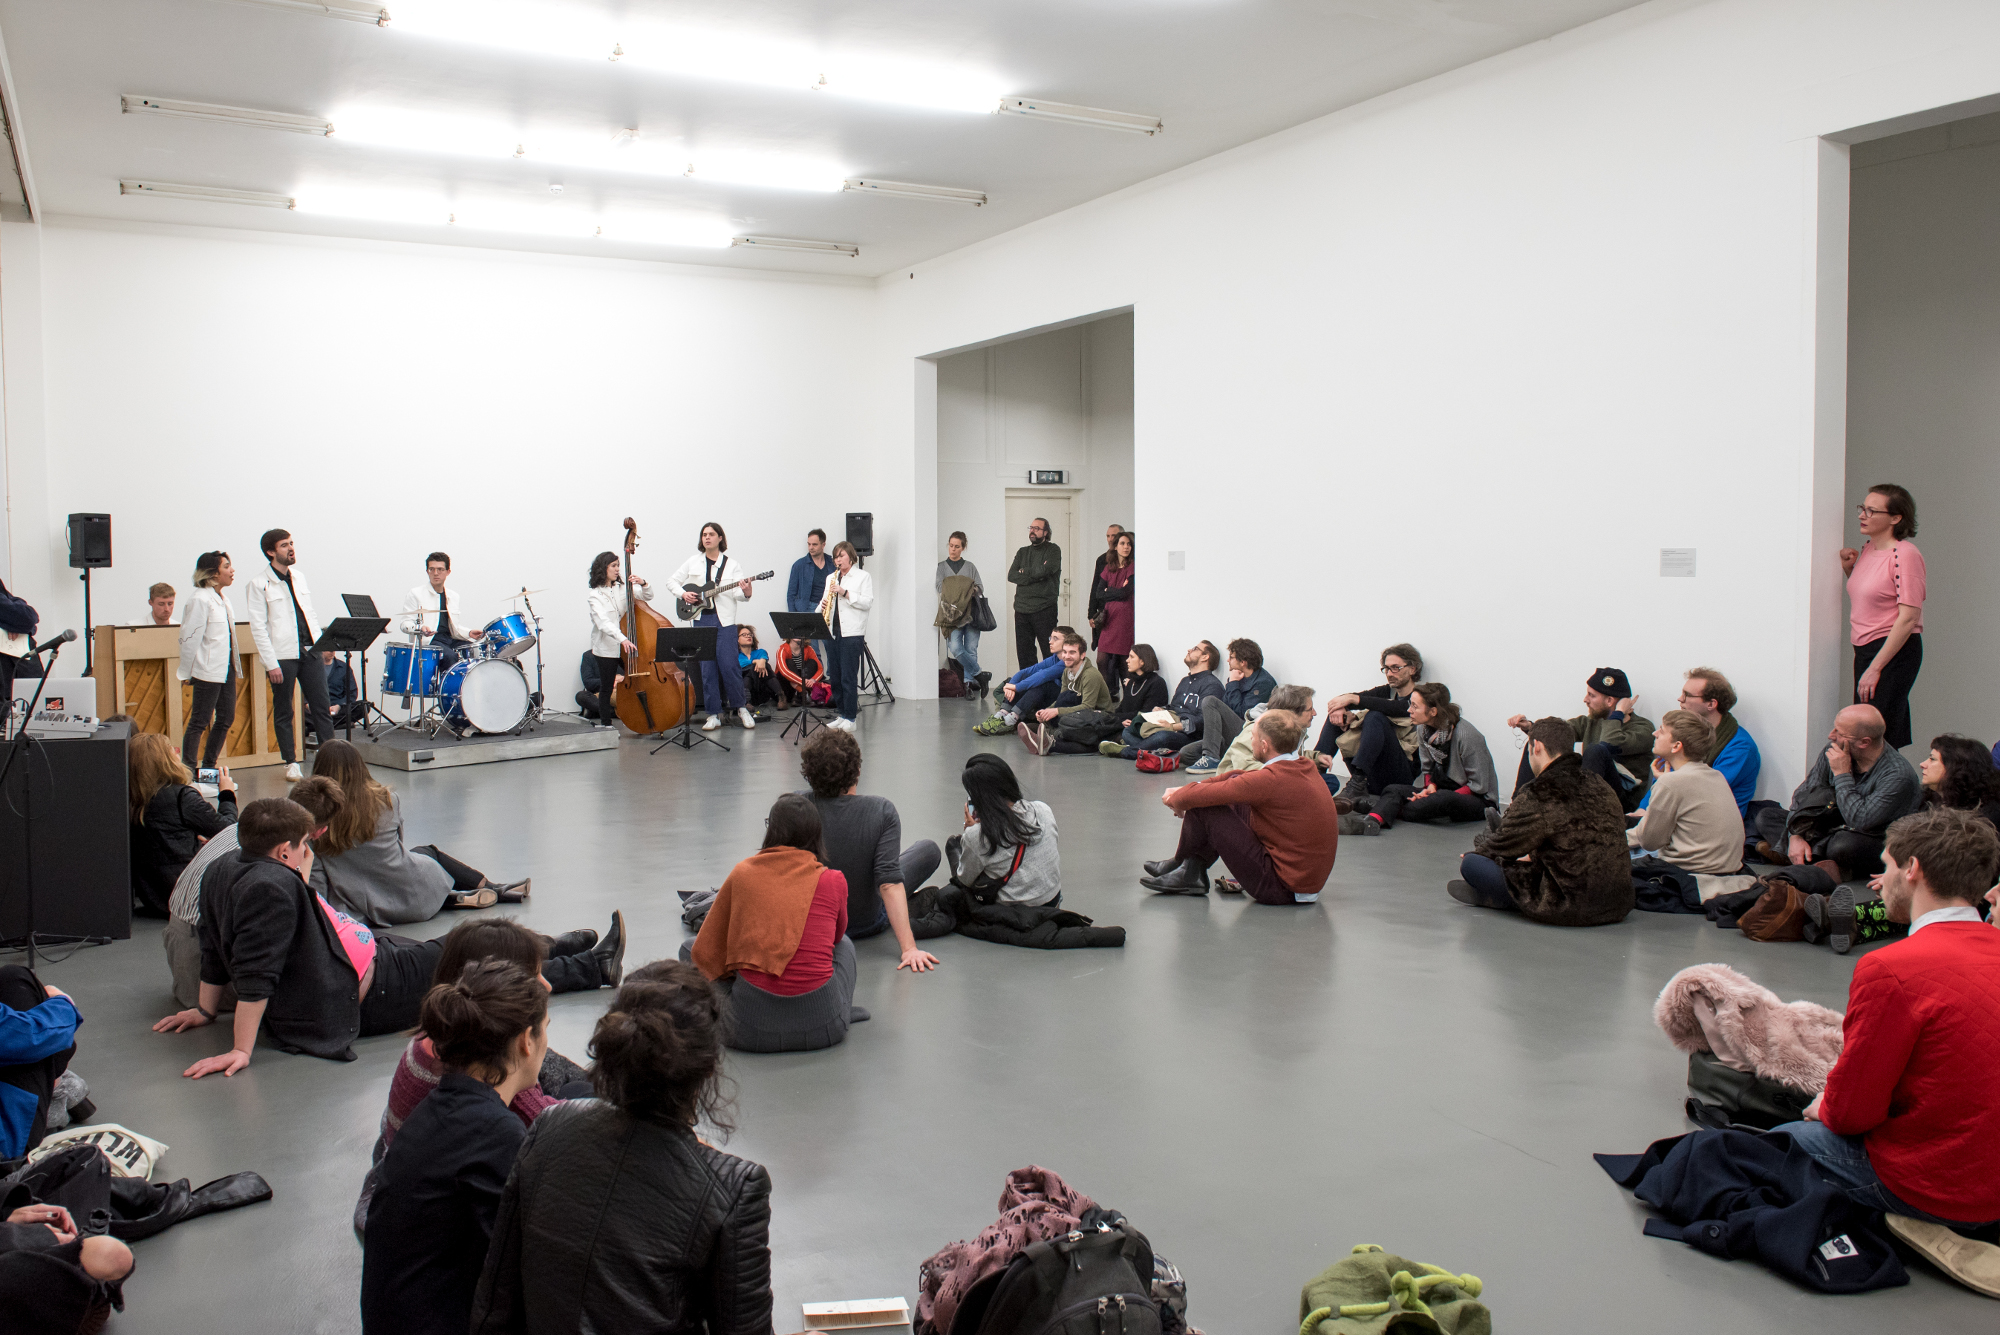 The gallery will host other kinds of activity outside of full performances, such as open rehearsals.